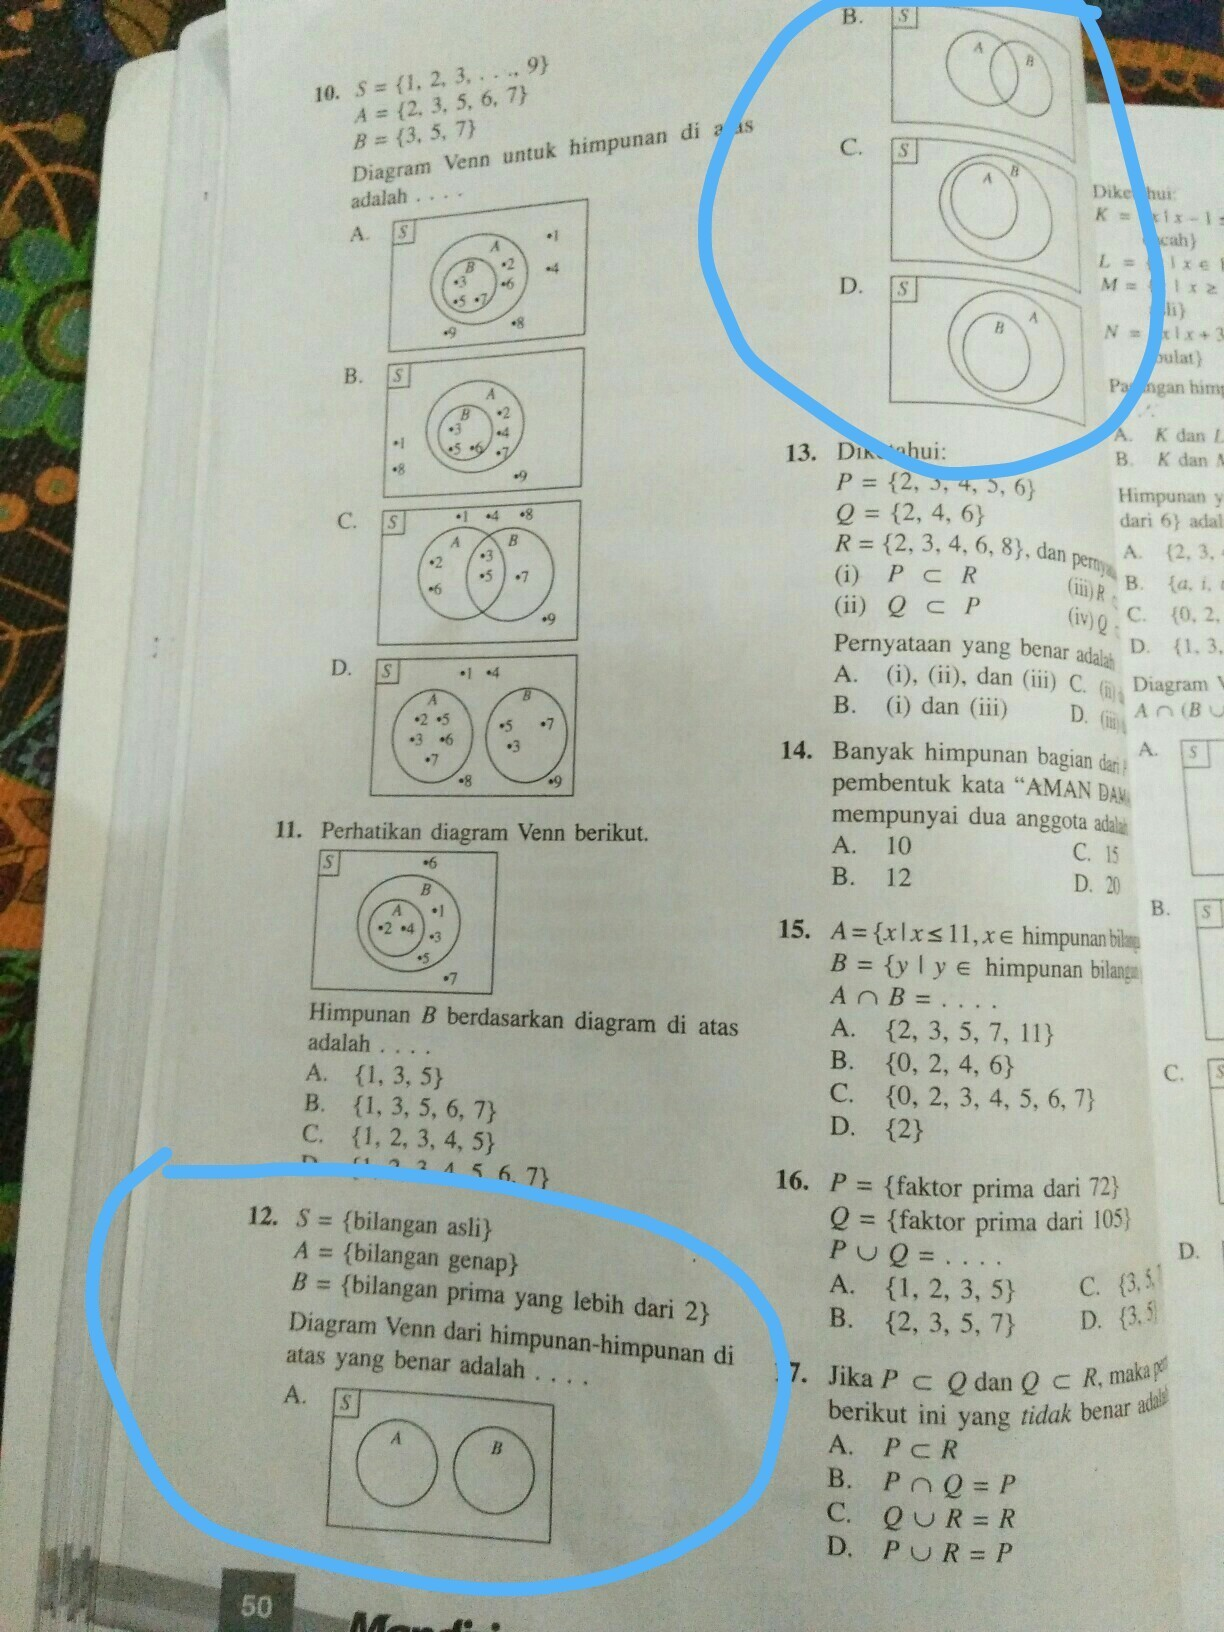 Bilangan Prima C++ : bilangan, prima, S={bilangan, Asli}, A={bilangan, Genap}, B={bilangan, Prima, Lebih, Diagram, Brainly.co.id